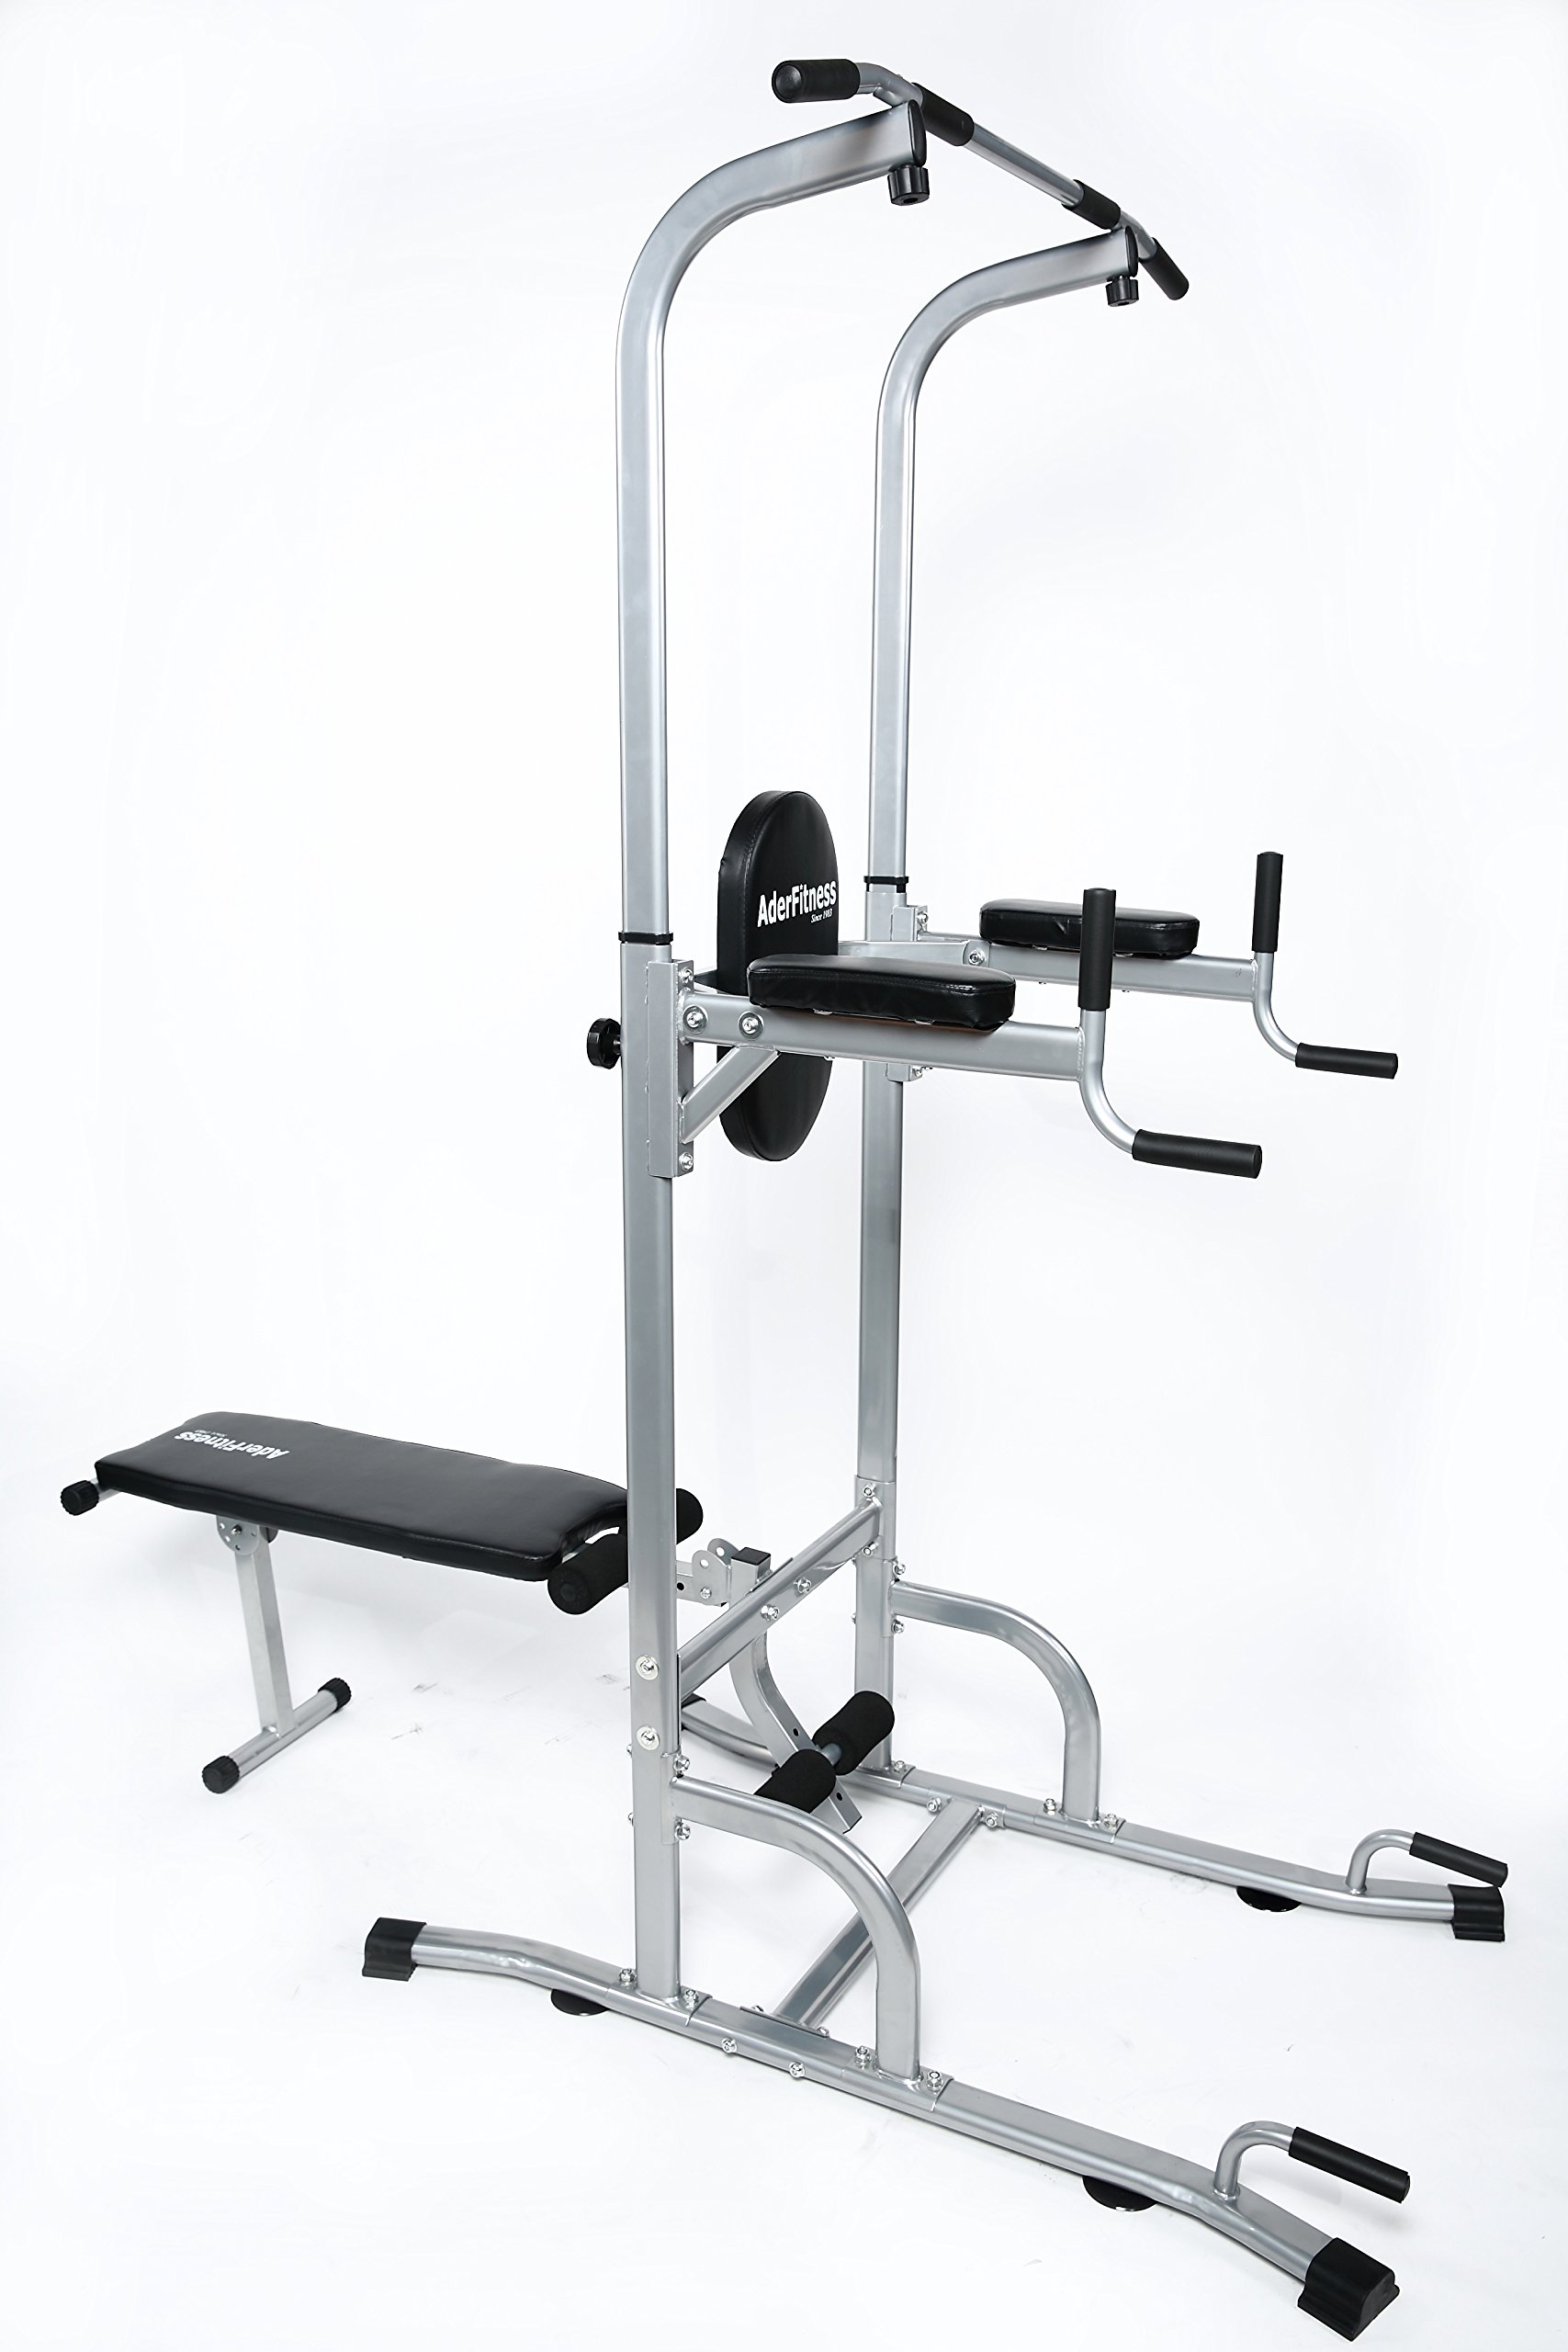 Ader Adjustable Muti-Function VKR Power Tower Chin/ Dip Ab Station w/ Sit Up Bench for Home Fitness